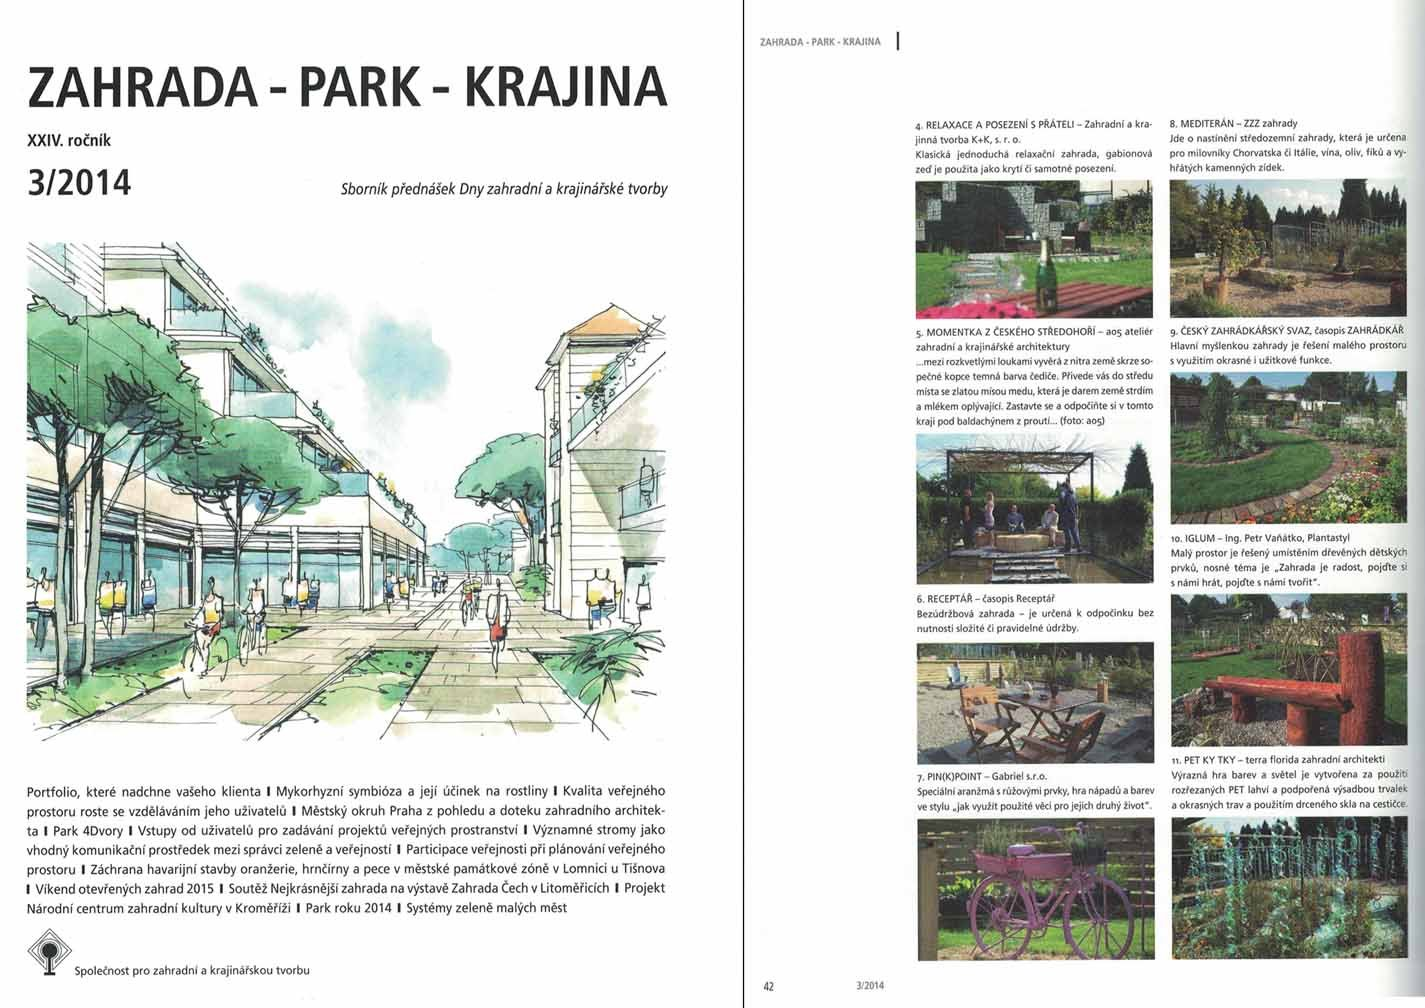 Zahrada Park Krajina 03/2014 - Competition The Most Beautiful  Garden (Bohemia Garden Exhibition)